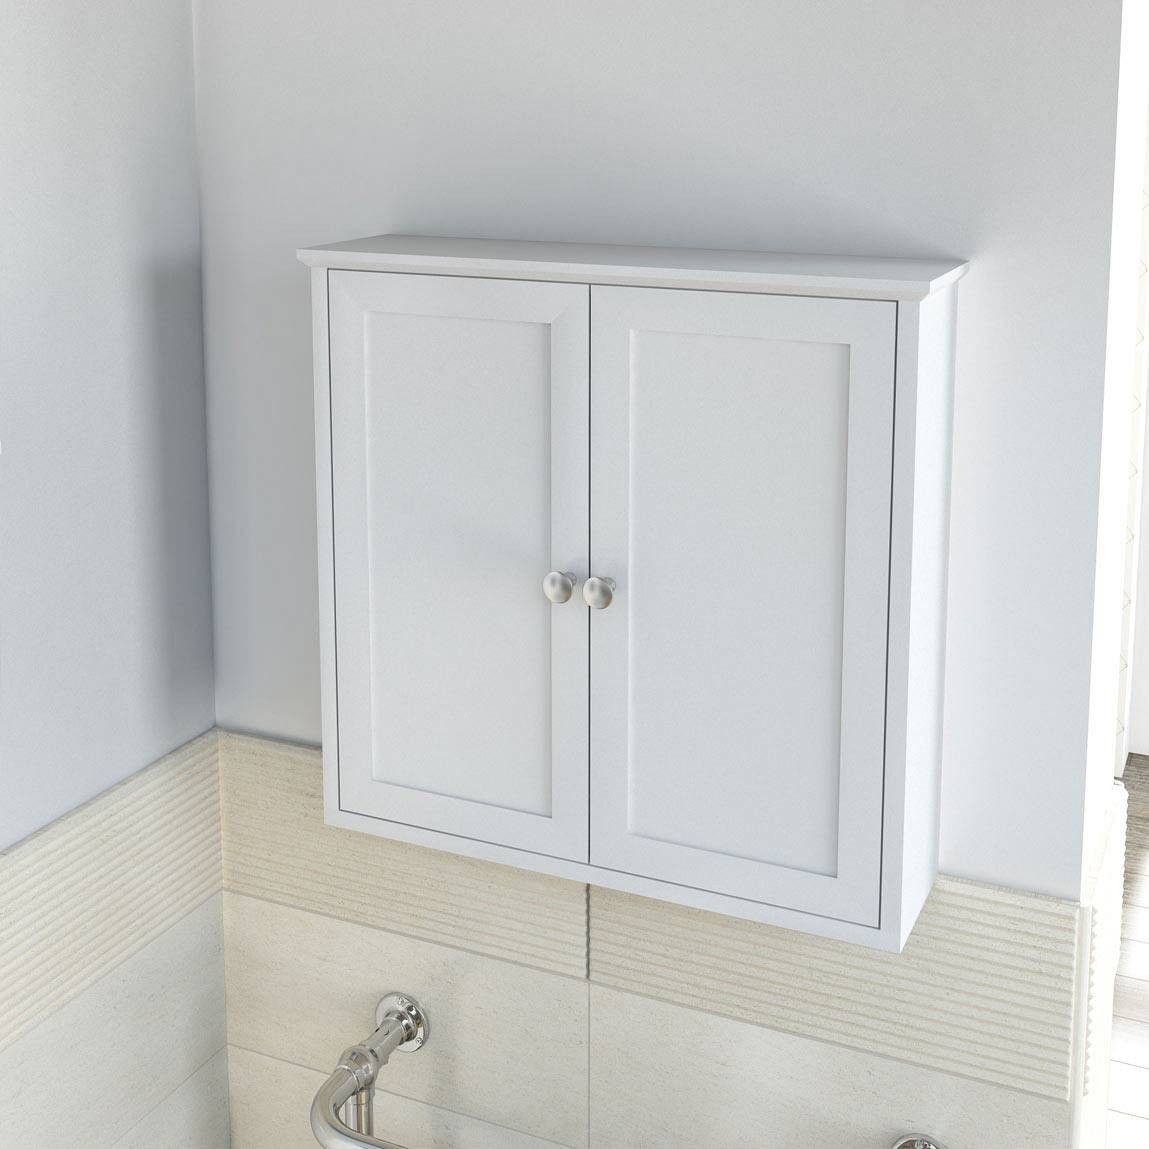 2019 Bathroom Storage Wall Cabinets White - Interior Paint Color ...